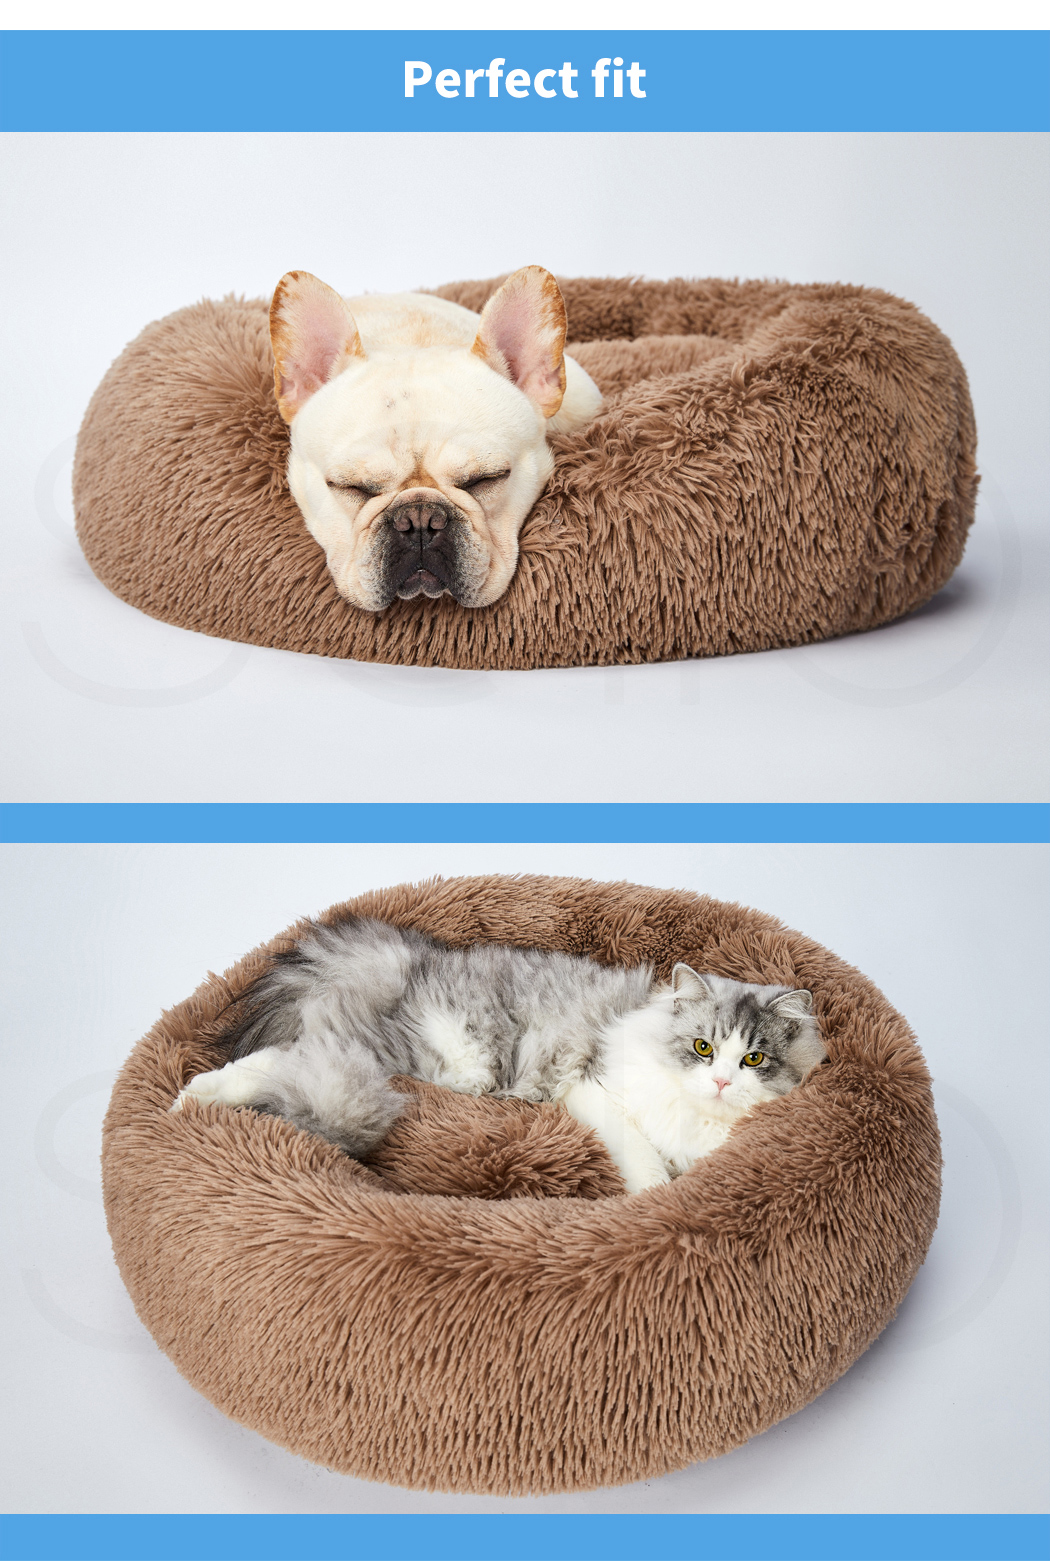 thumbnail 19 - PaWz Dog Calming Bed Cat Cave Pet Nest Soft Plush Warm Comfy Kennel Extra Large